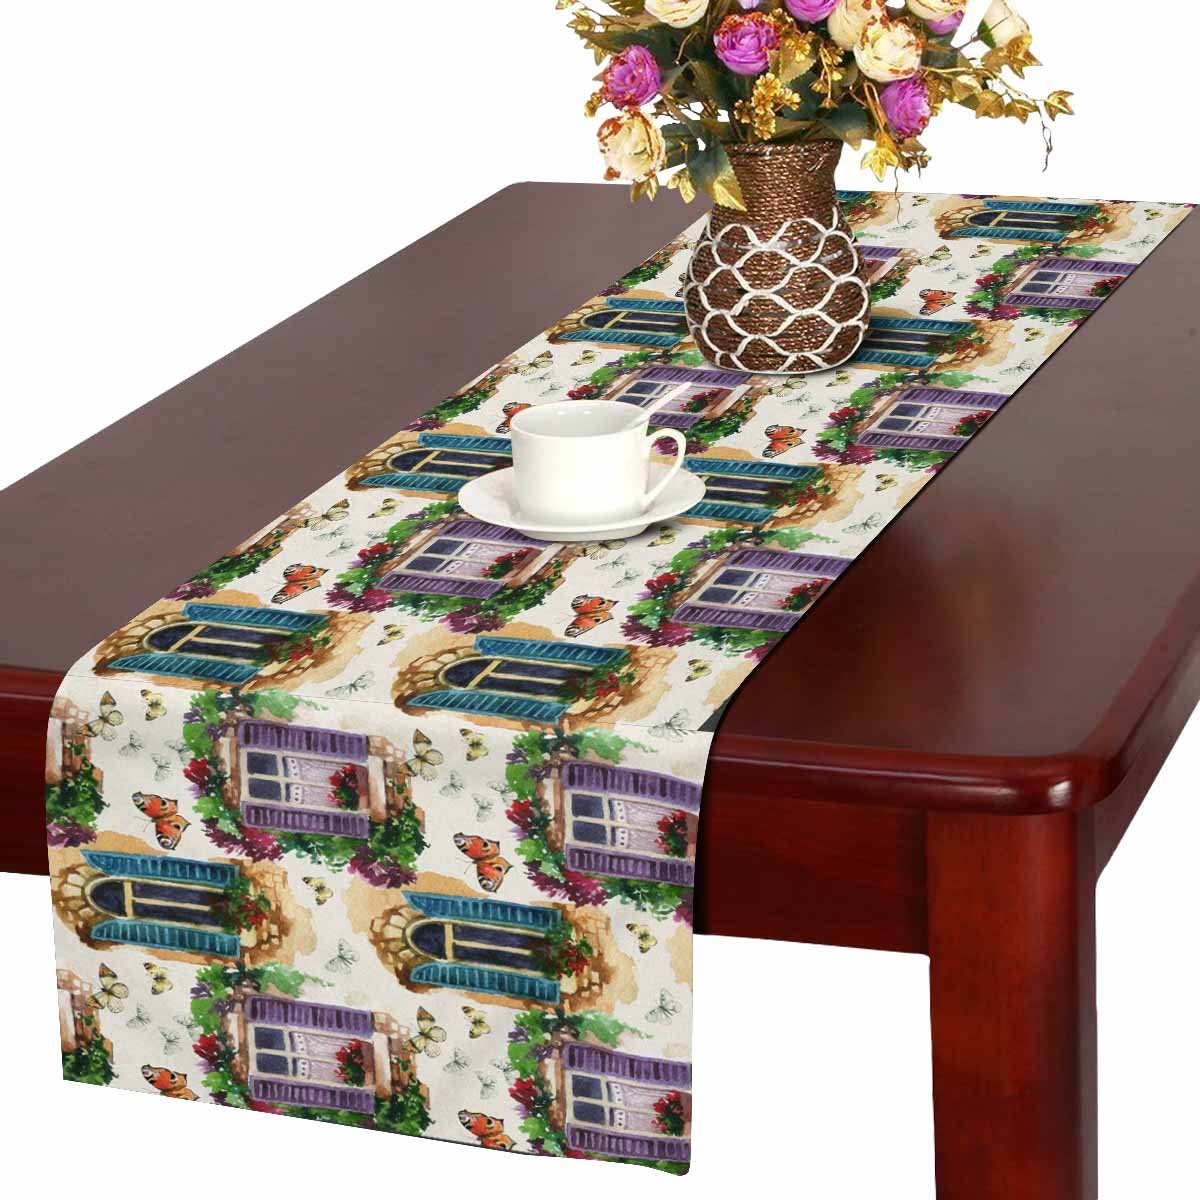 Watercolor Window Table Runner Home Decor 14 X 72 Inch,Floral Butterfly Table Cloth Runner for Wedding Party Banquet Decoration